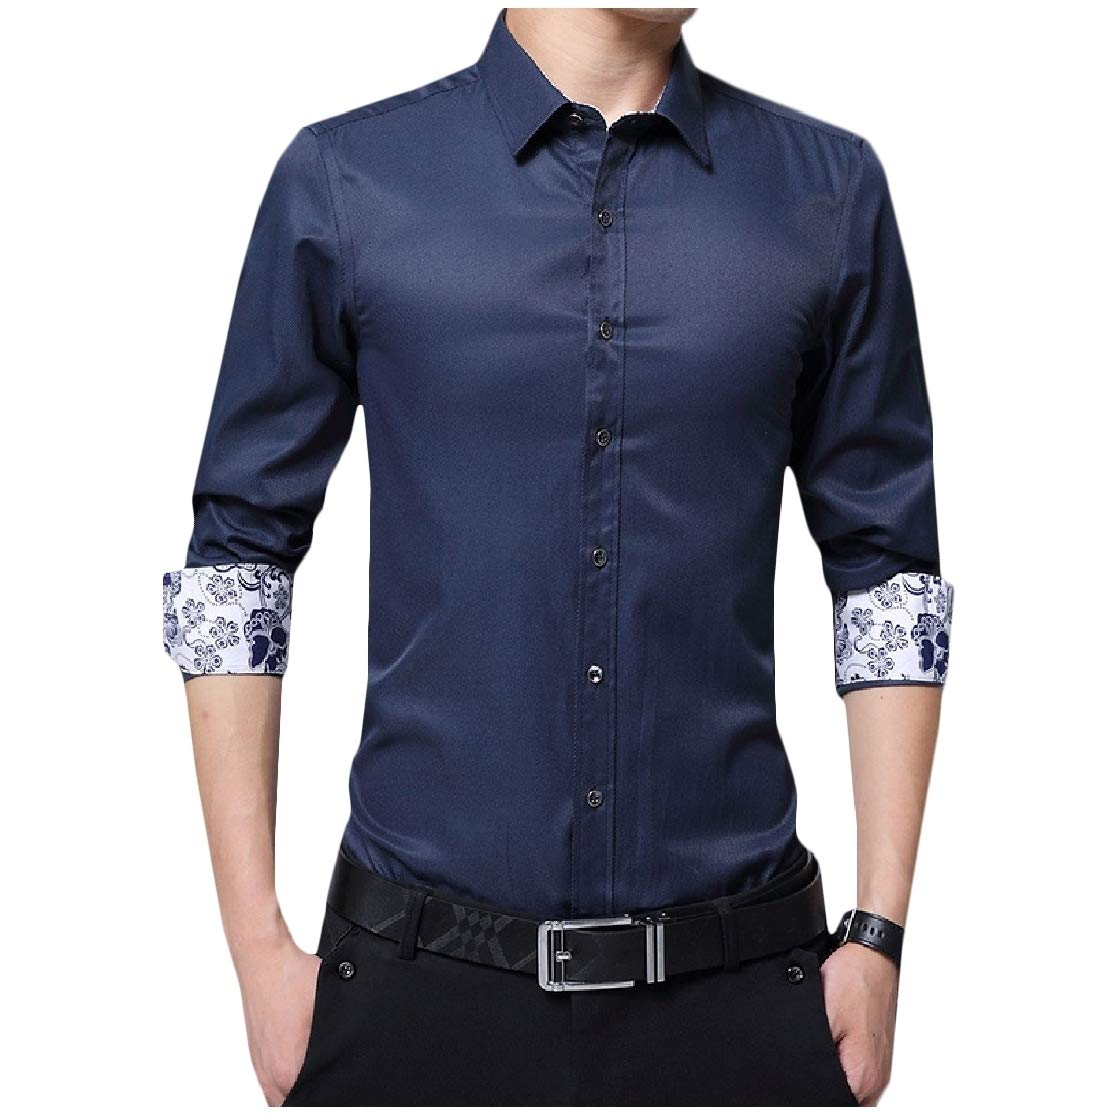 Abetteric Mens Juniors Summer Long-Sleeve Floral Printed Button Down Shirt